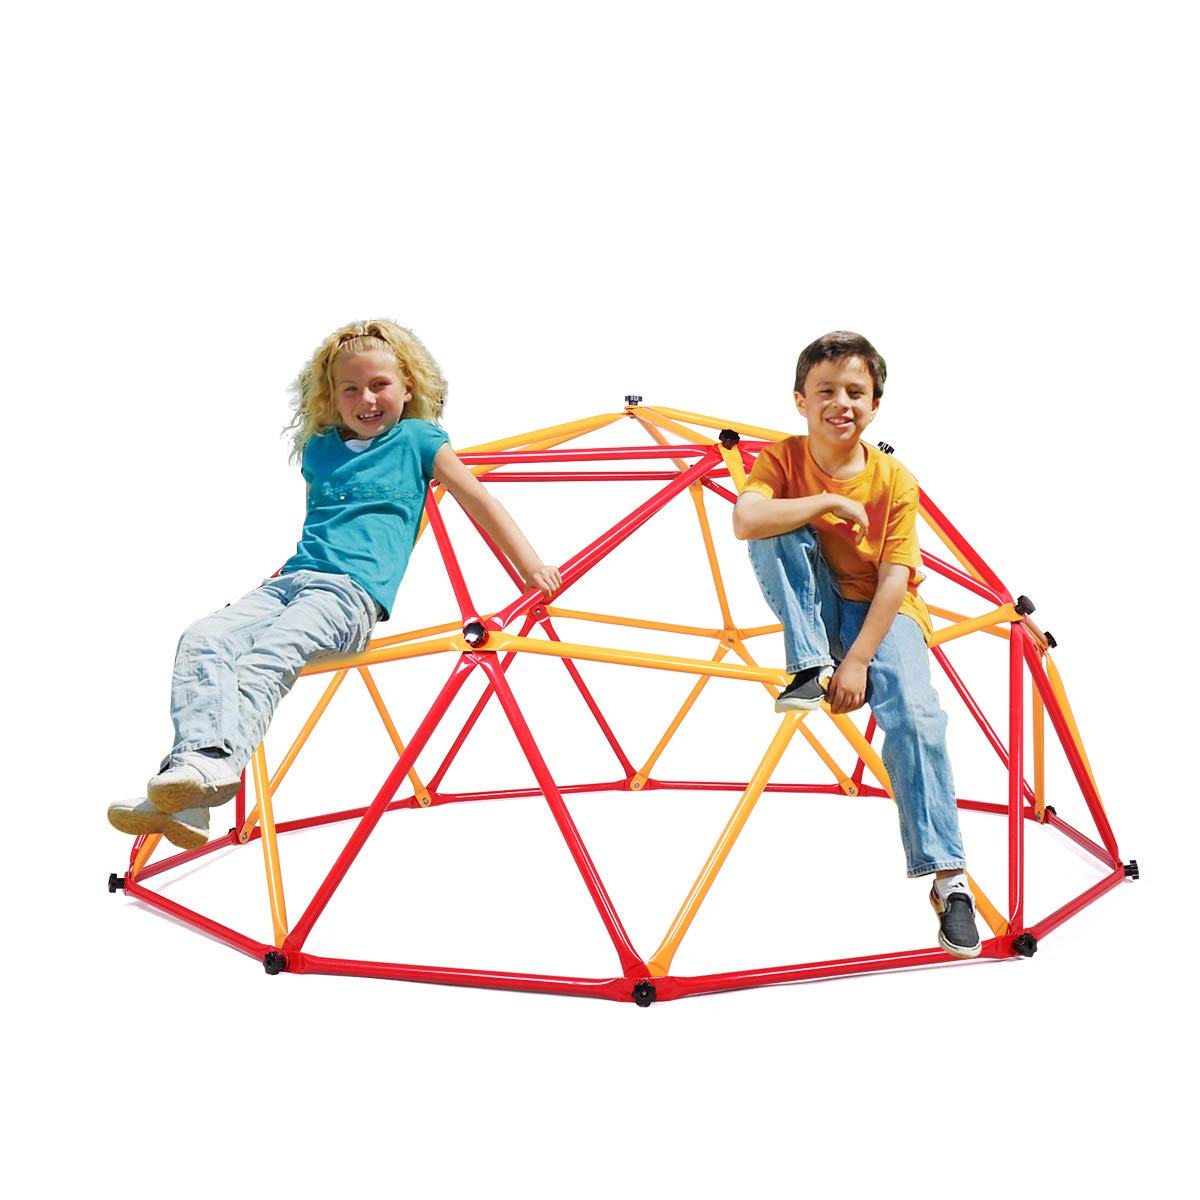 JAXPETY Outdoor Dome Climber Playground Children Kid Swing Set Climbing Frame Backyard Gym by JAXPETY